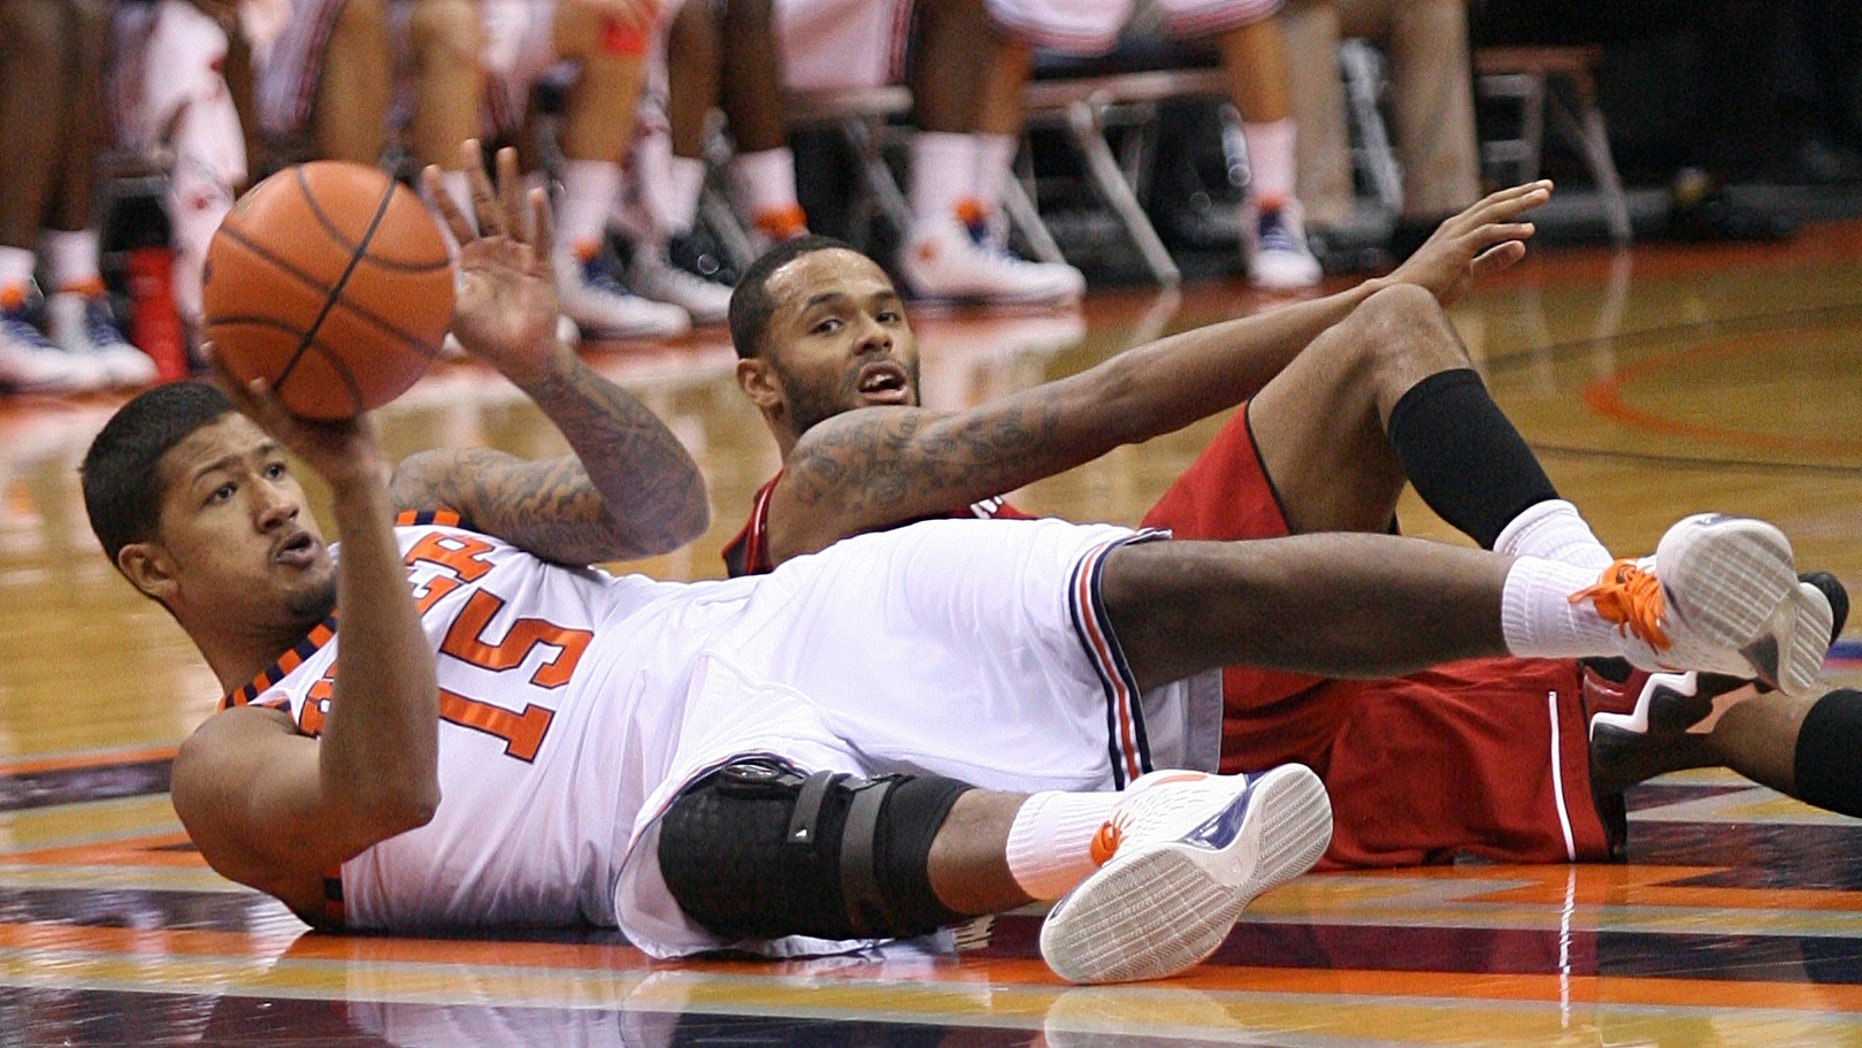 UTEP's Malcolm Moore dives for a loose ball against Nebraska's Ray Gallegos during an NCAA college basketball game Sunday Dec. 23, 2012, in the championship game of the WestStar Bank Don Haskins Sun Bowl Invitational at the Don Haskins Center in El Paso, Texas.  (AP Photo/El Paso Times, Mark Lambie)